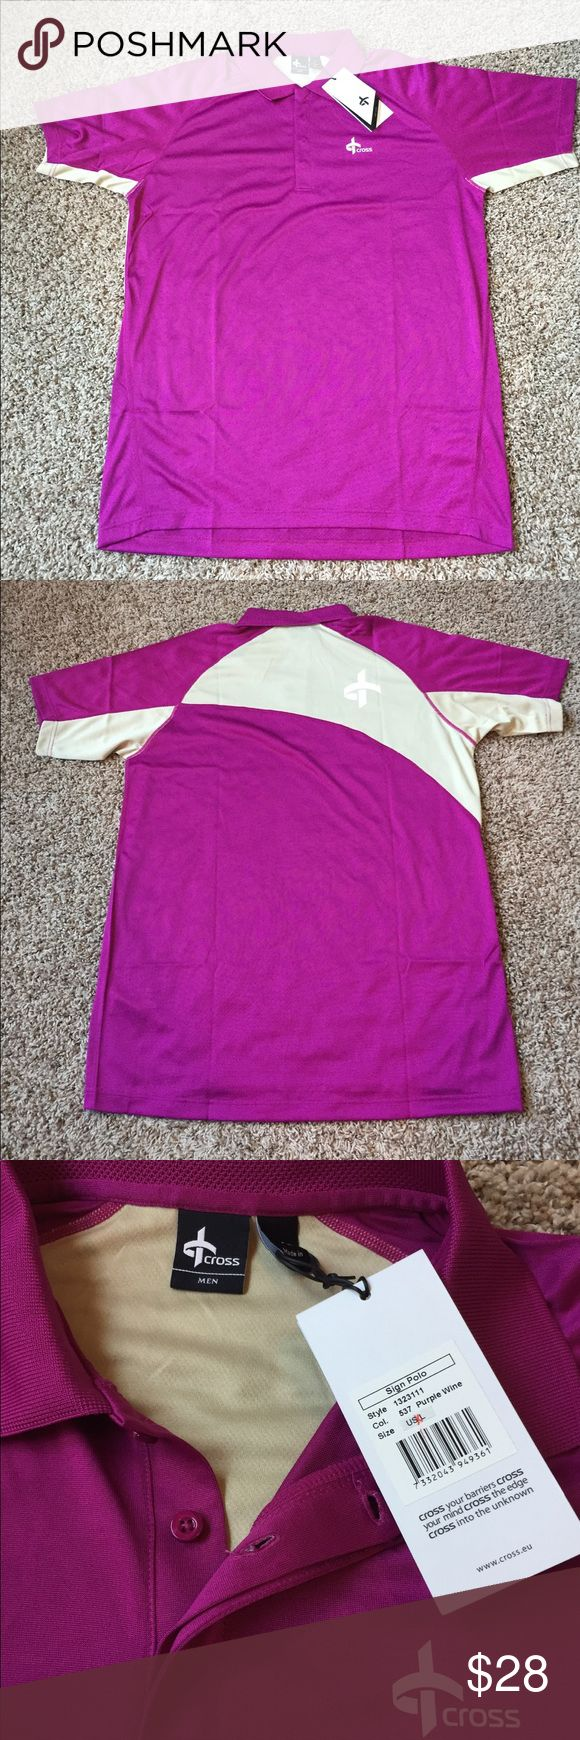 NWT Luxury Cross Brand Men's Polo XL Comfort and quality materials make this polo style golf shirt a wonderful addition to any man's wardrobe. Color is Purple Wine with beige side panels. Size XL shirt is in perfect condition and new with tags. Smoke free home. Cross Shirts Polos